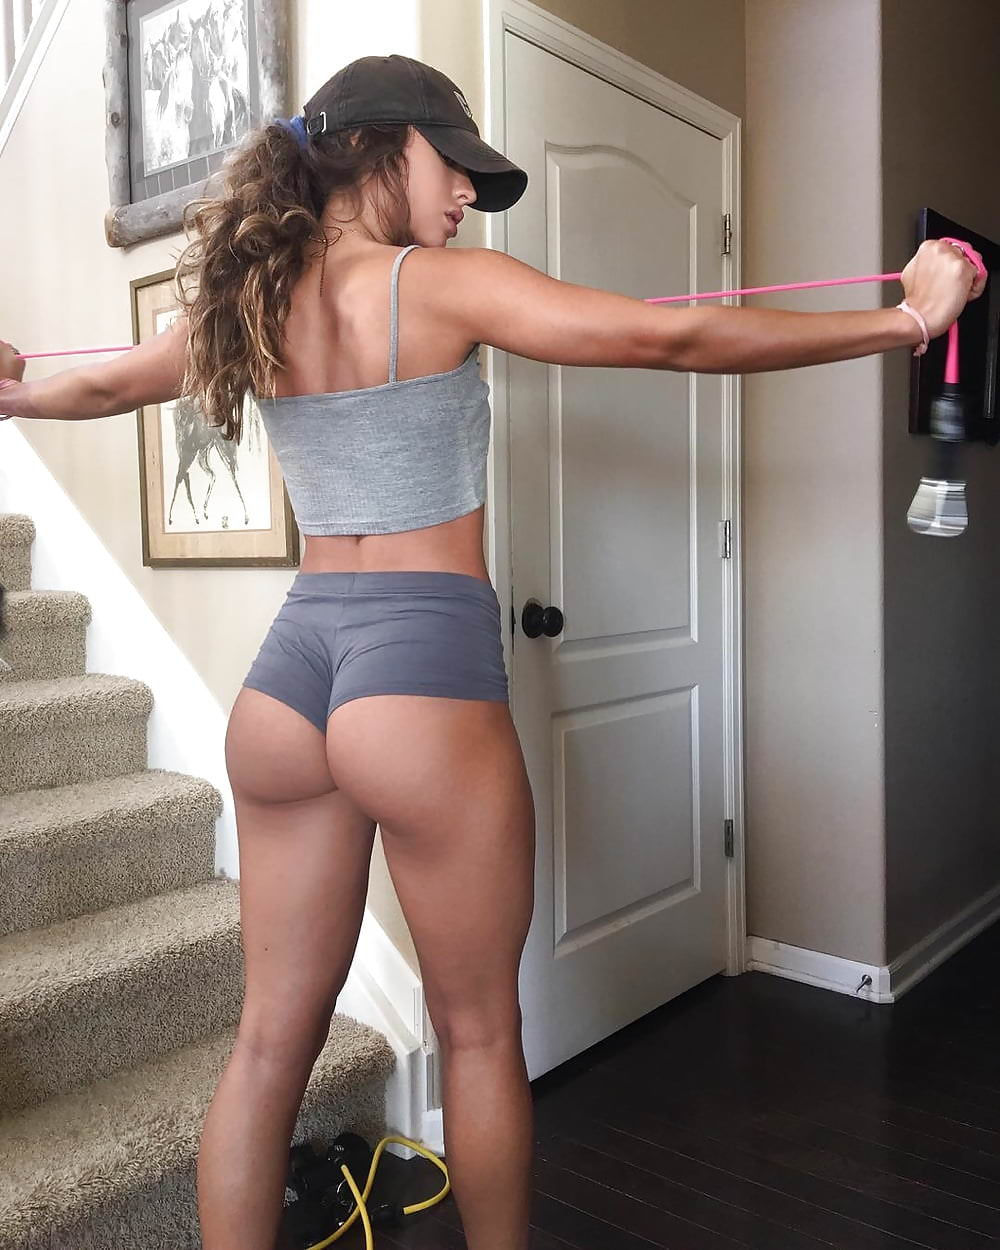 Tight shorts sexy ass view